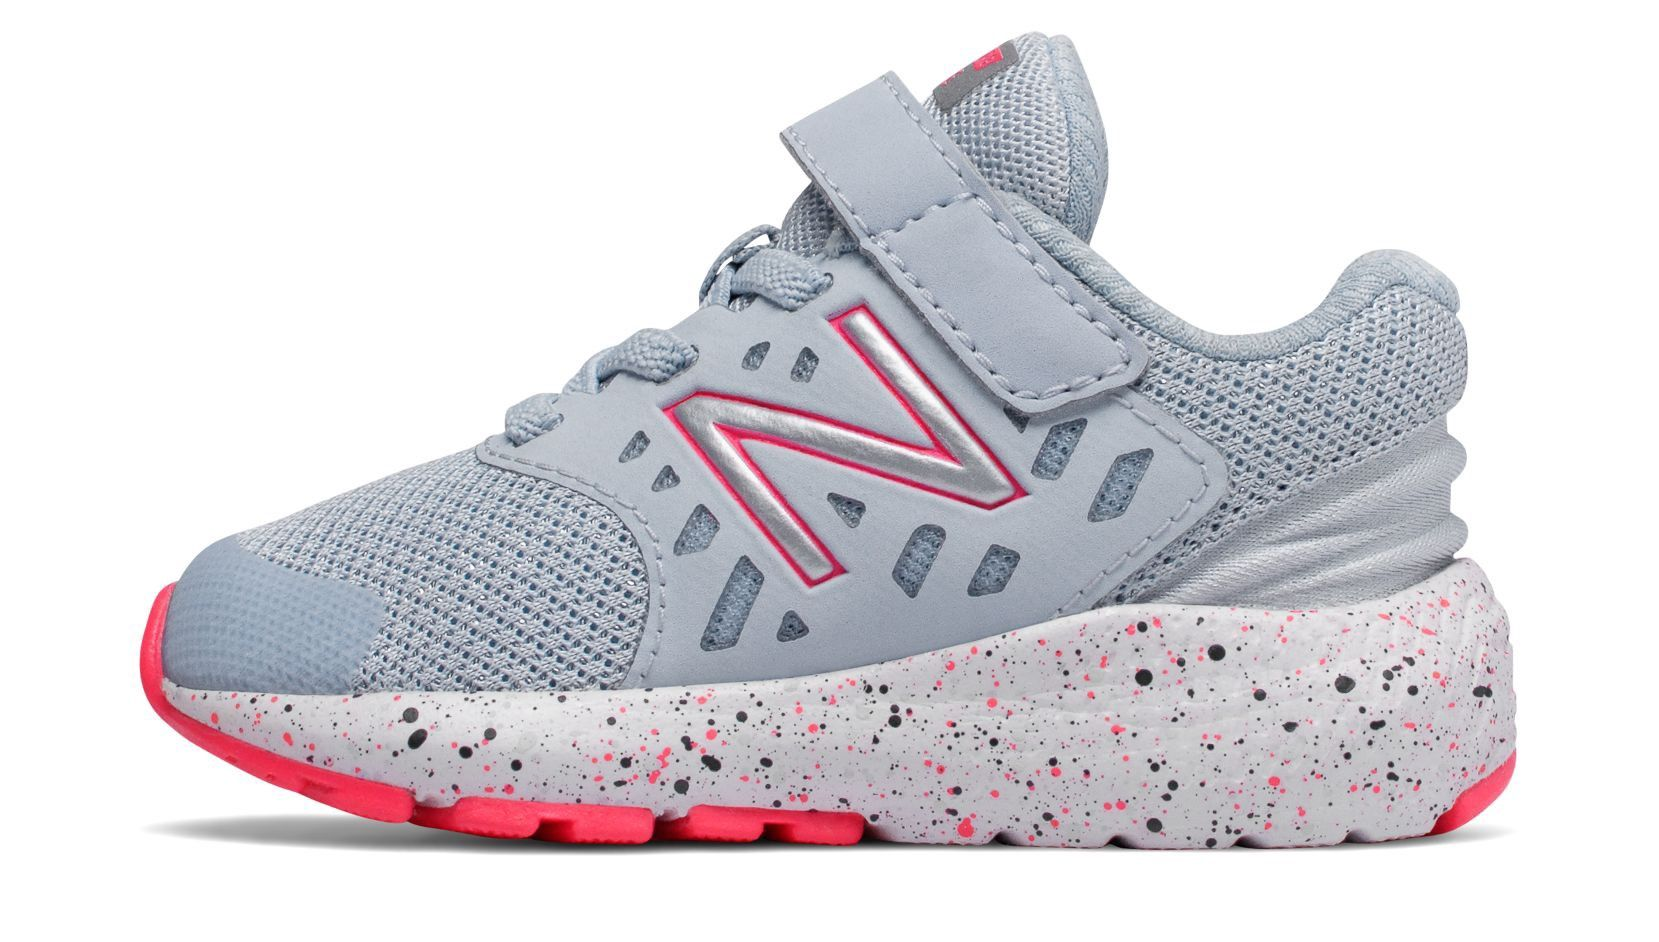 New Balance Fuelcore Urge V2 - Pink Zing With Polaris 2 Wide ...